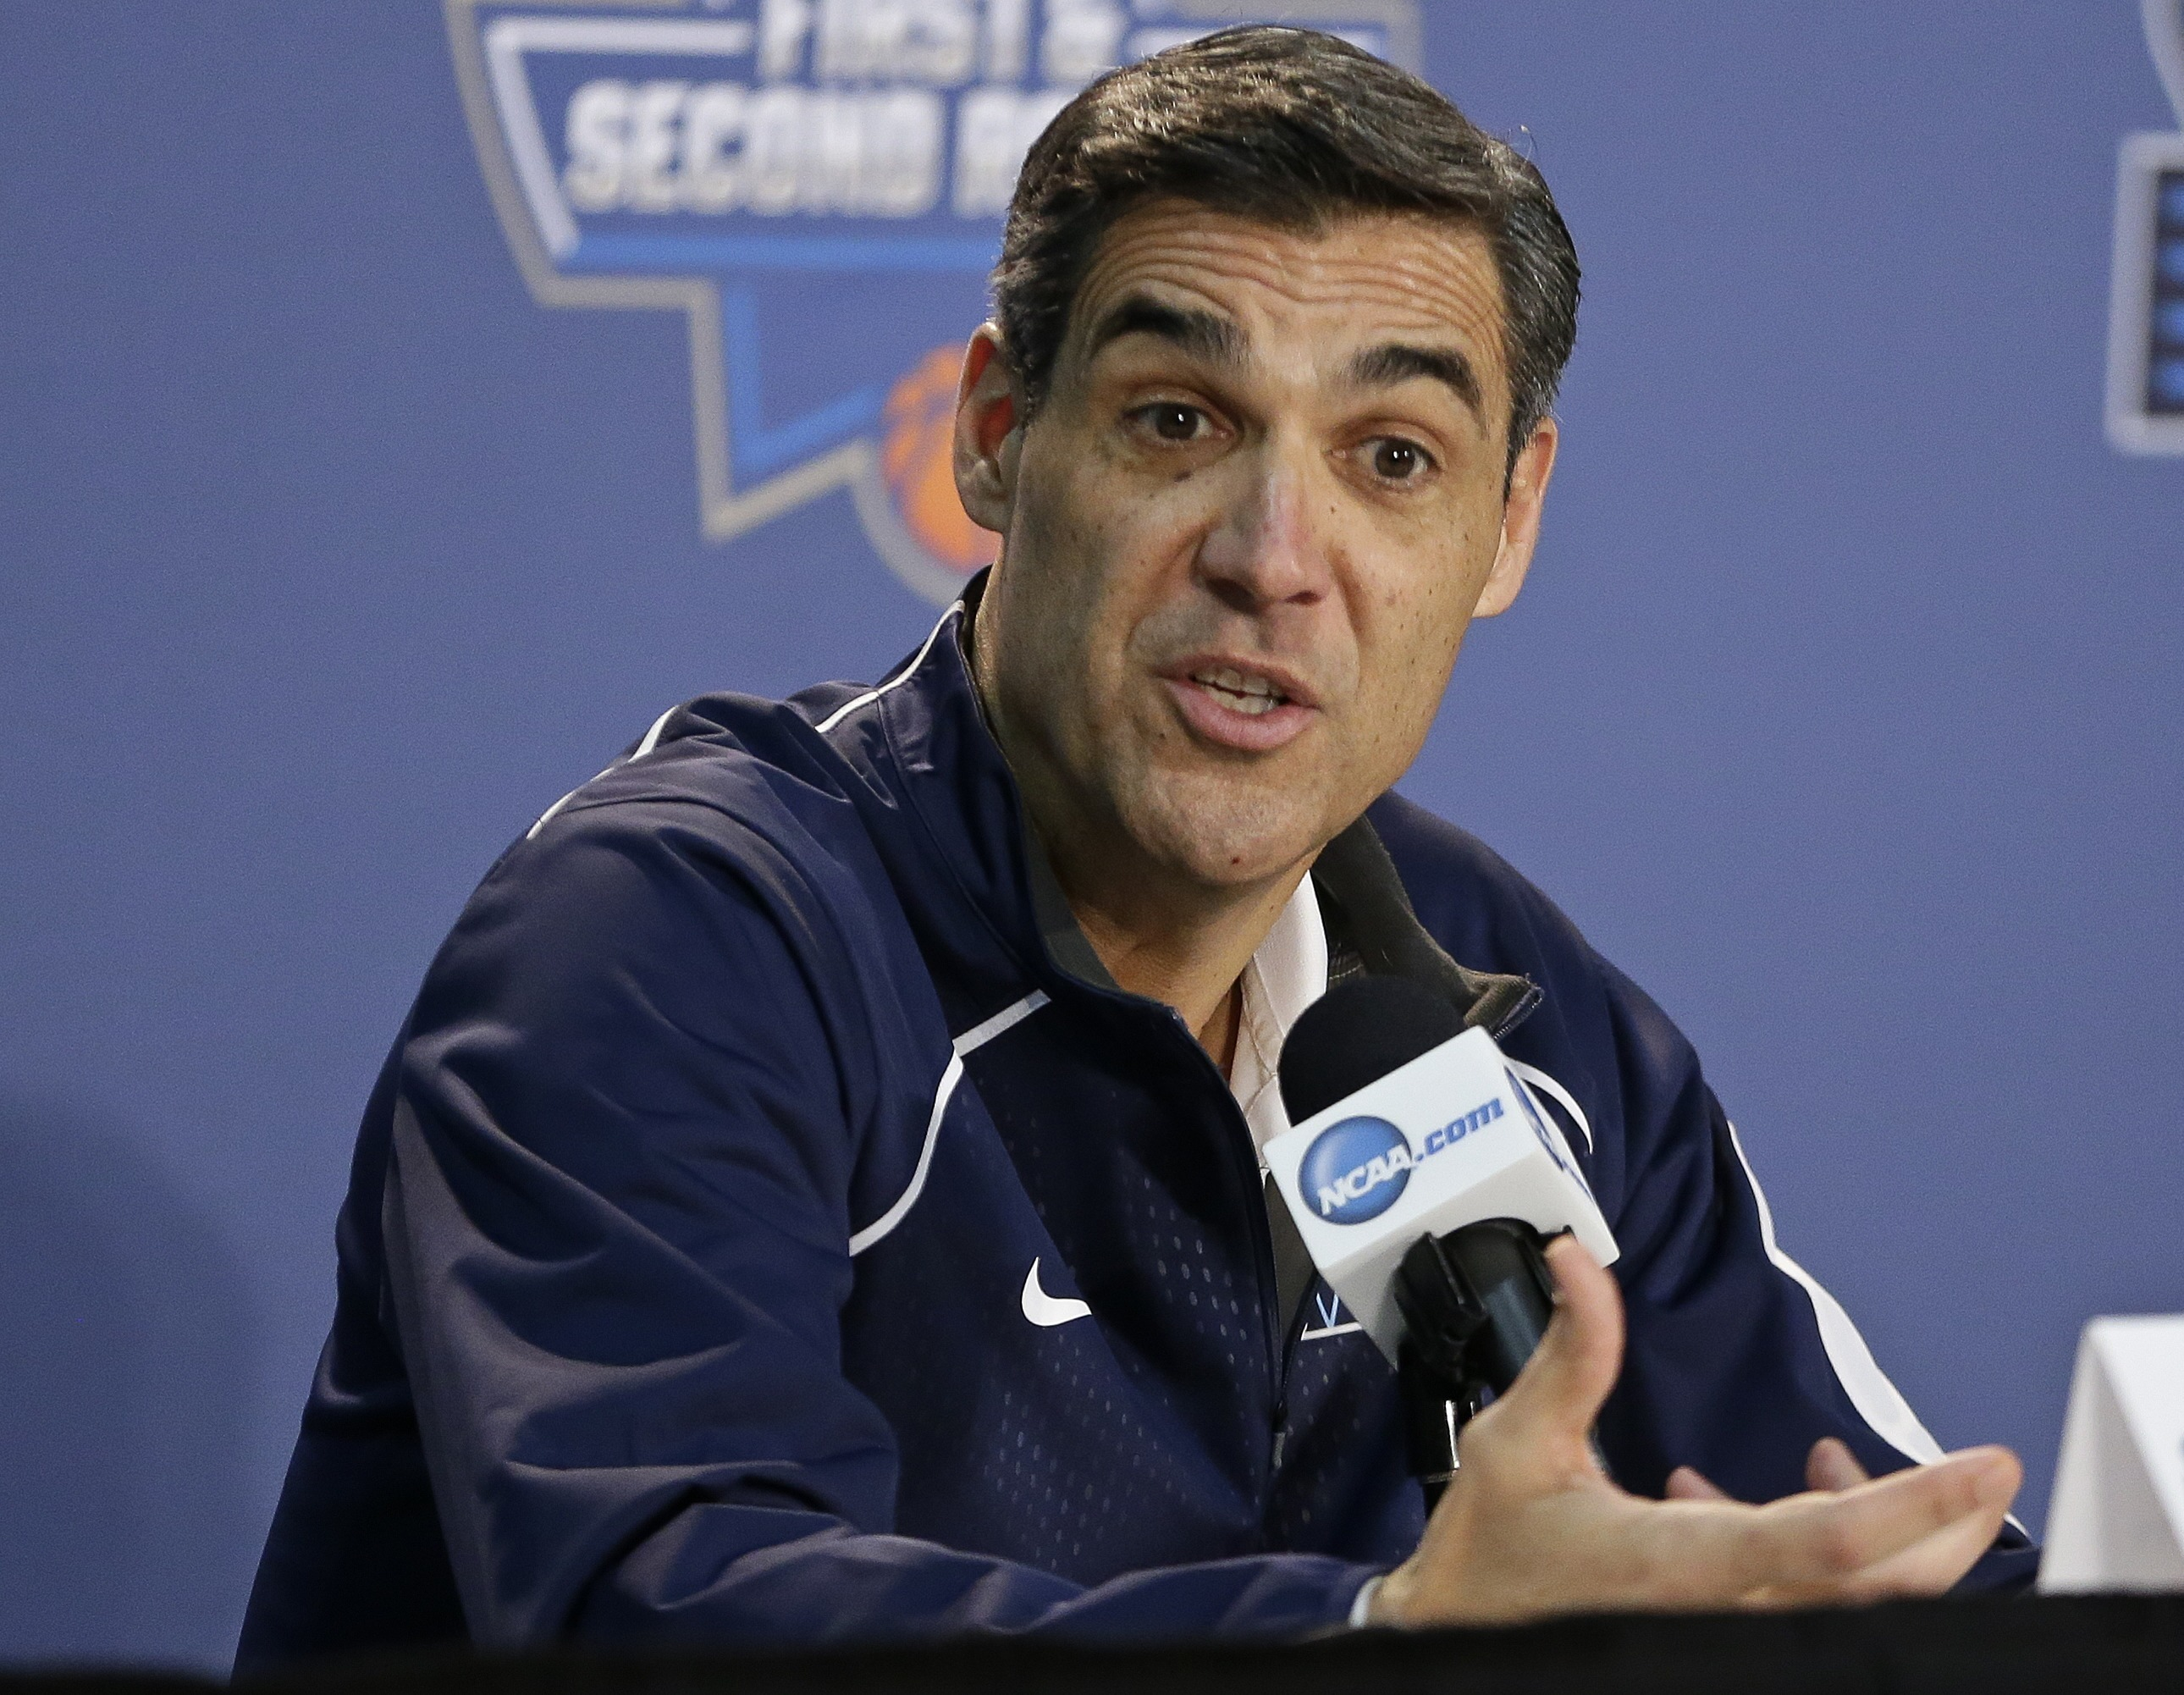 Villanova head coach Jay Wright responds to questions during a news conference before Friday's first-round men's college basketball game against North Carolina-Asheville in the NCAA Tournament Thursday, March 17, 2016, in New York. (AP Photo/Frank Frankli